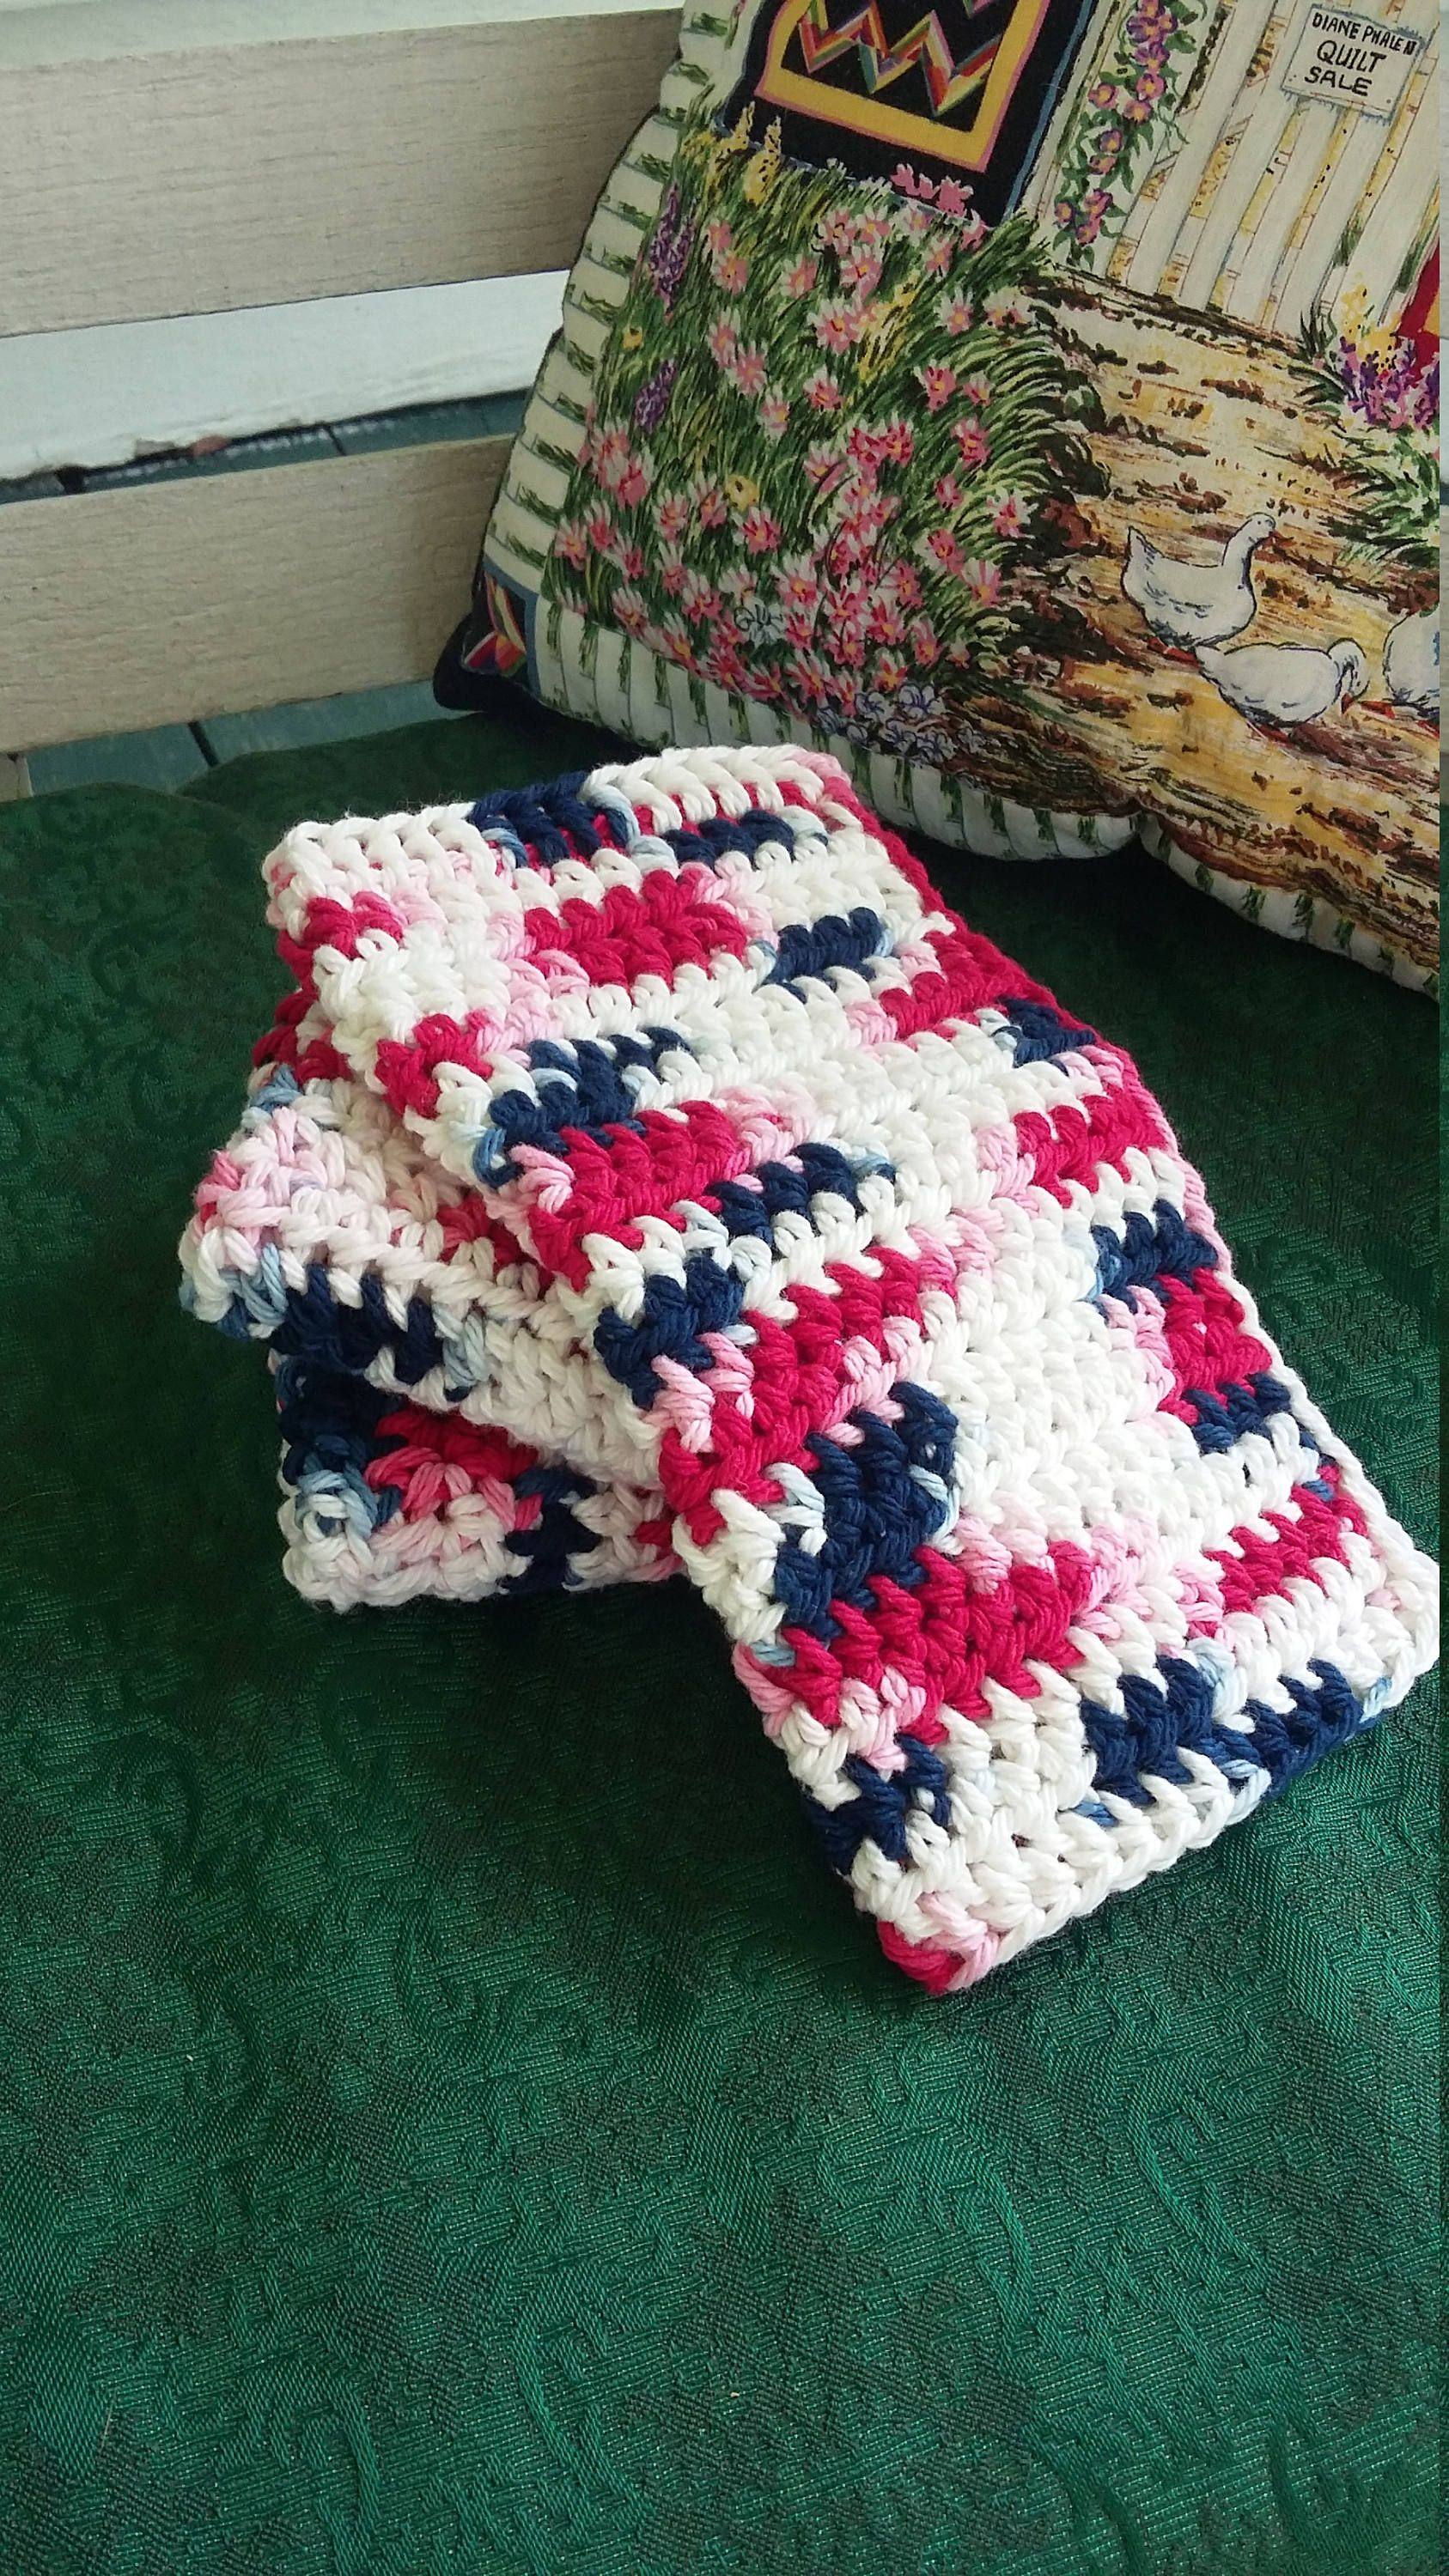 Crochet dish cloths, Rustic country, Kitchen decor  Ready to ship is part of Country Clothes Rustic - My 100% cotton dish or wash cloths would make a great housewarming gift   Or just spomething special for yourself  They come in a set of 3 8x8 cloths for $9 00   They are very durable and will last for years to come   They are machine washable, will shrink a bit due to being 100% cotton   Shades and size may vary slightly depending on the brand of yarn  If you would like this item in a different color just send me an email and I will be happy to help  Handmade in a nonsmoking pet free home  Thank you for stopping by my shop and have a blessed day